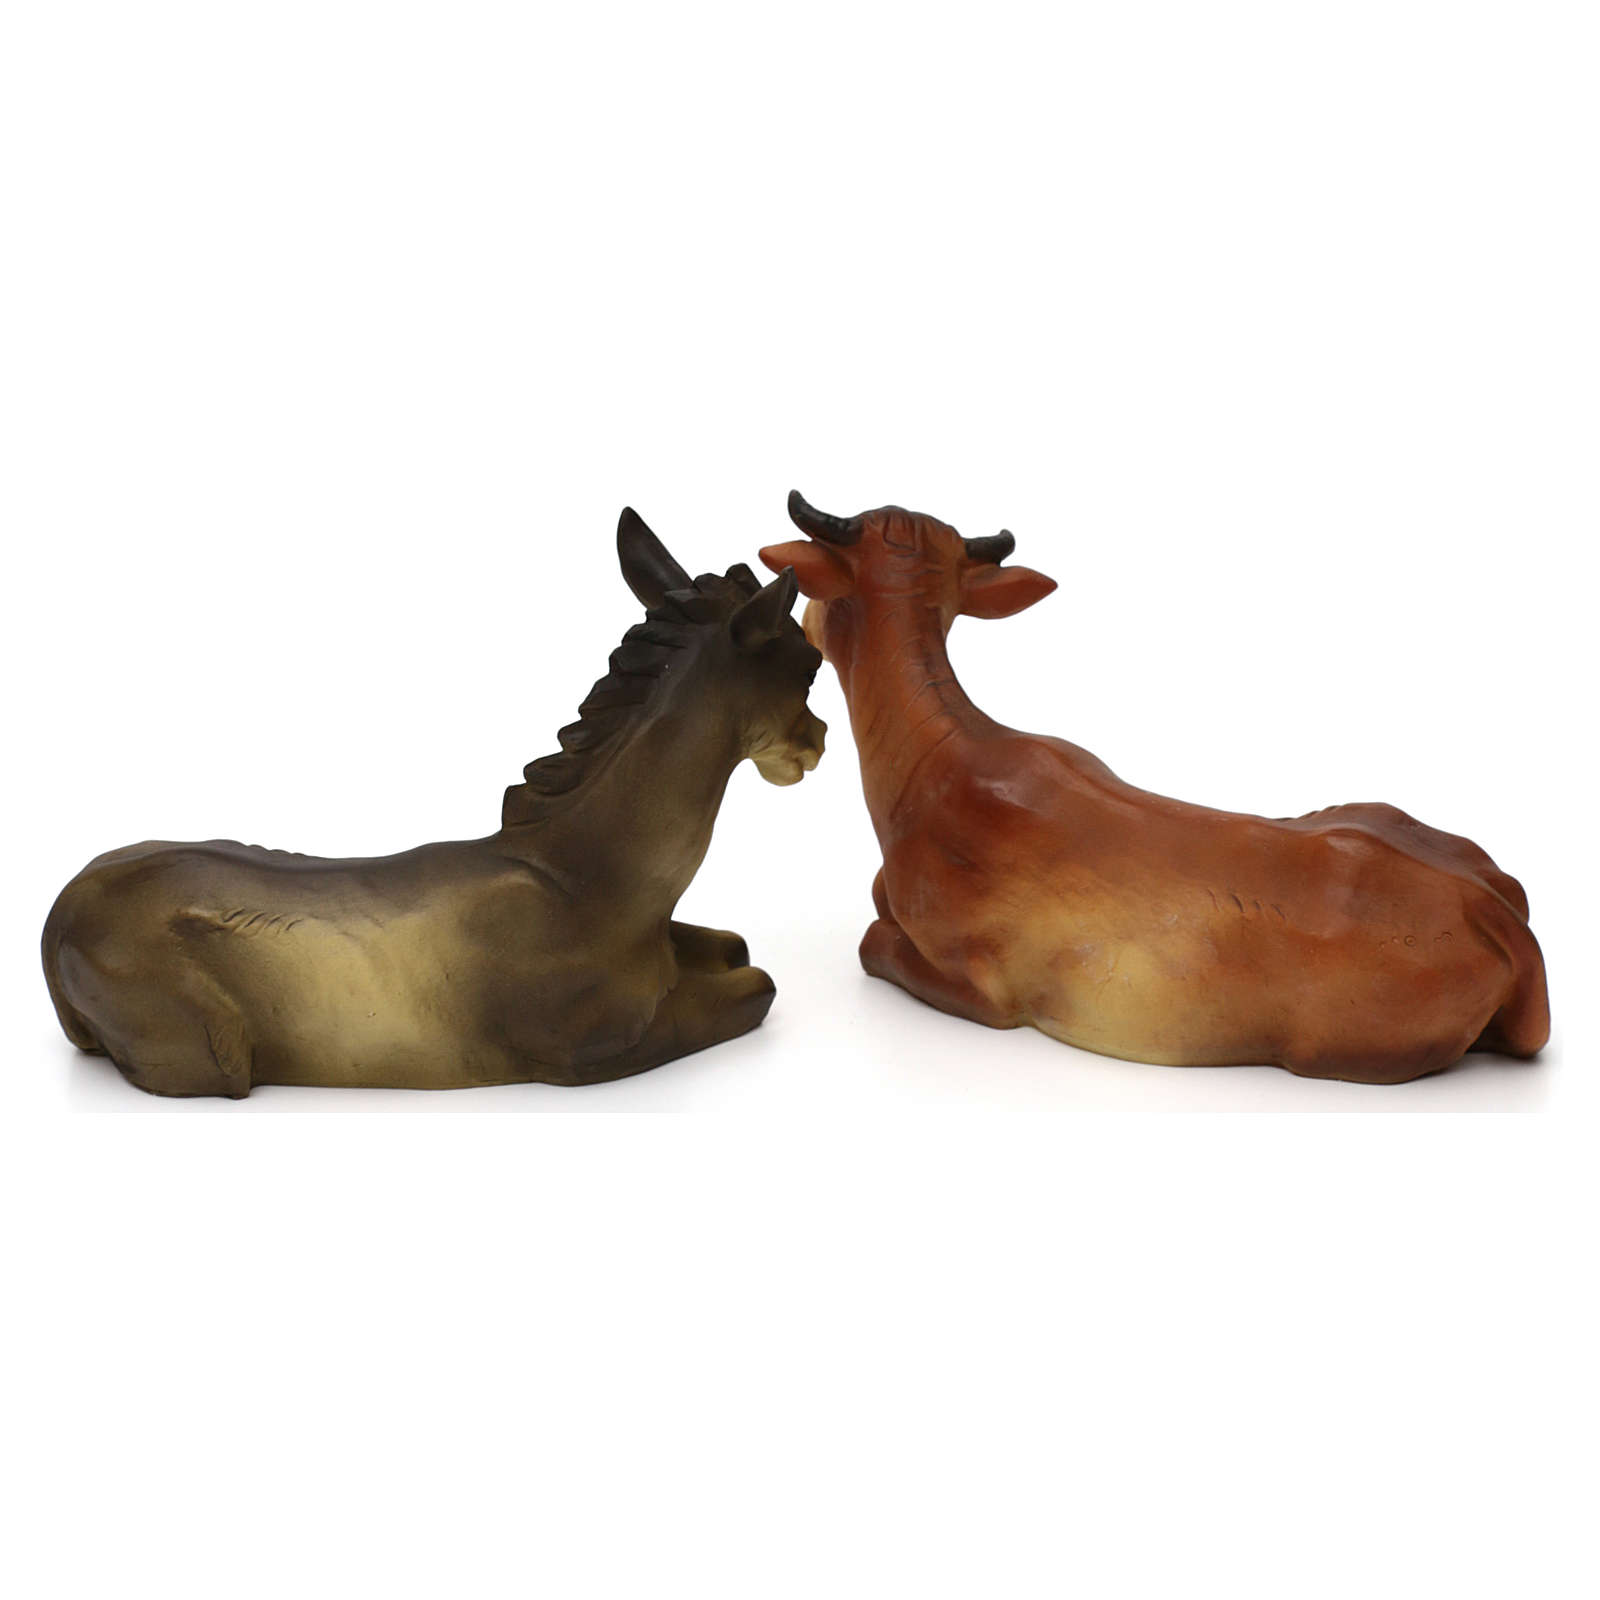 Nativity scene figurines, donkey and ox in resin for 25-30 cm Nativity scene 3